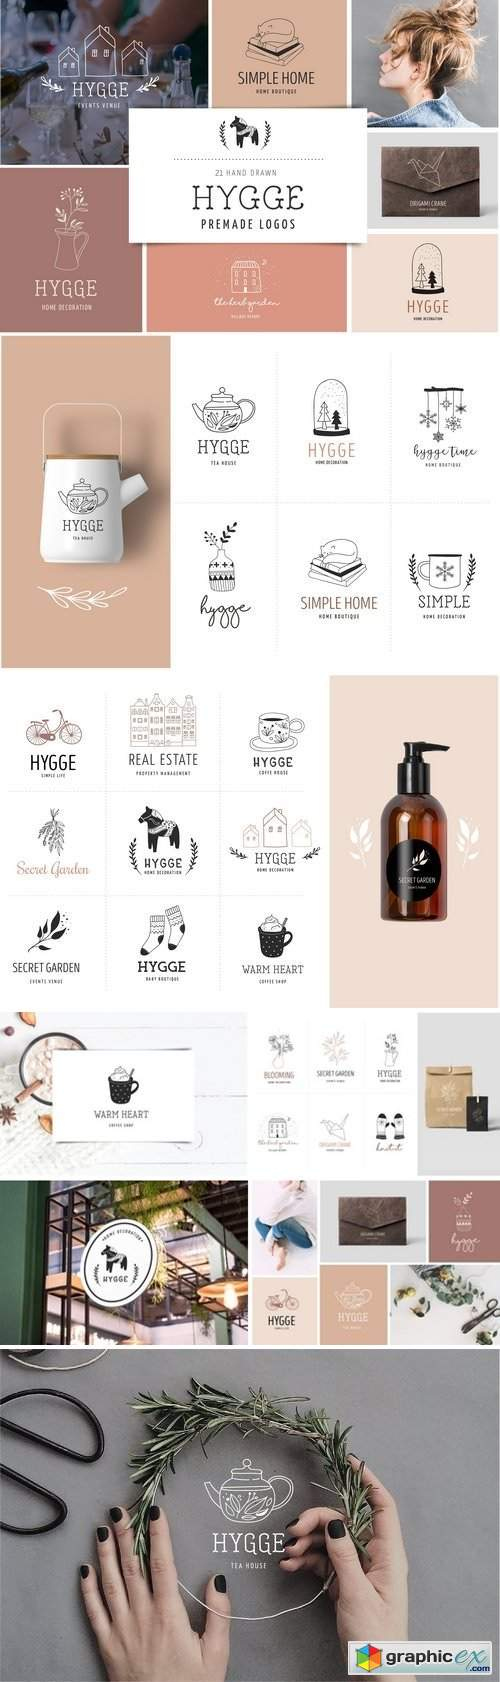 Hygge - premade logo collection